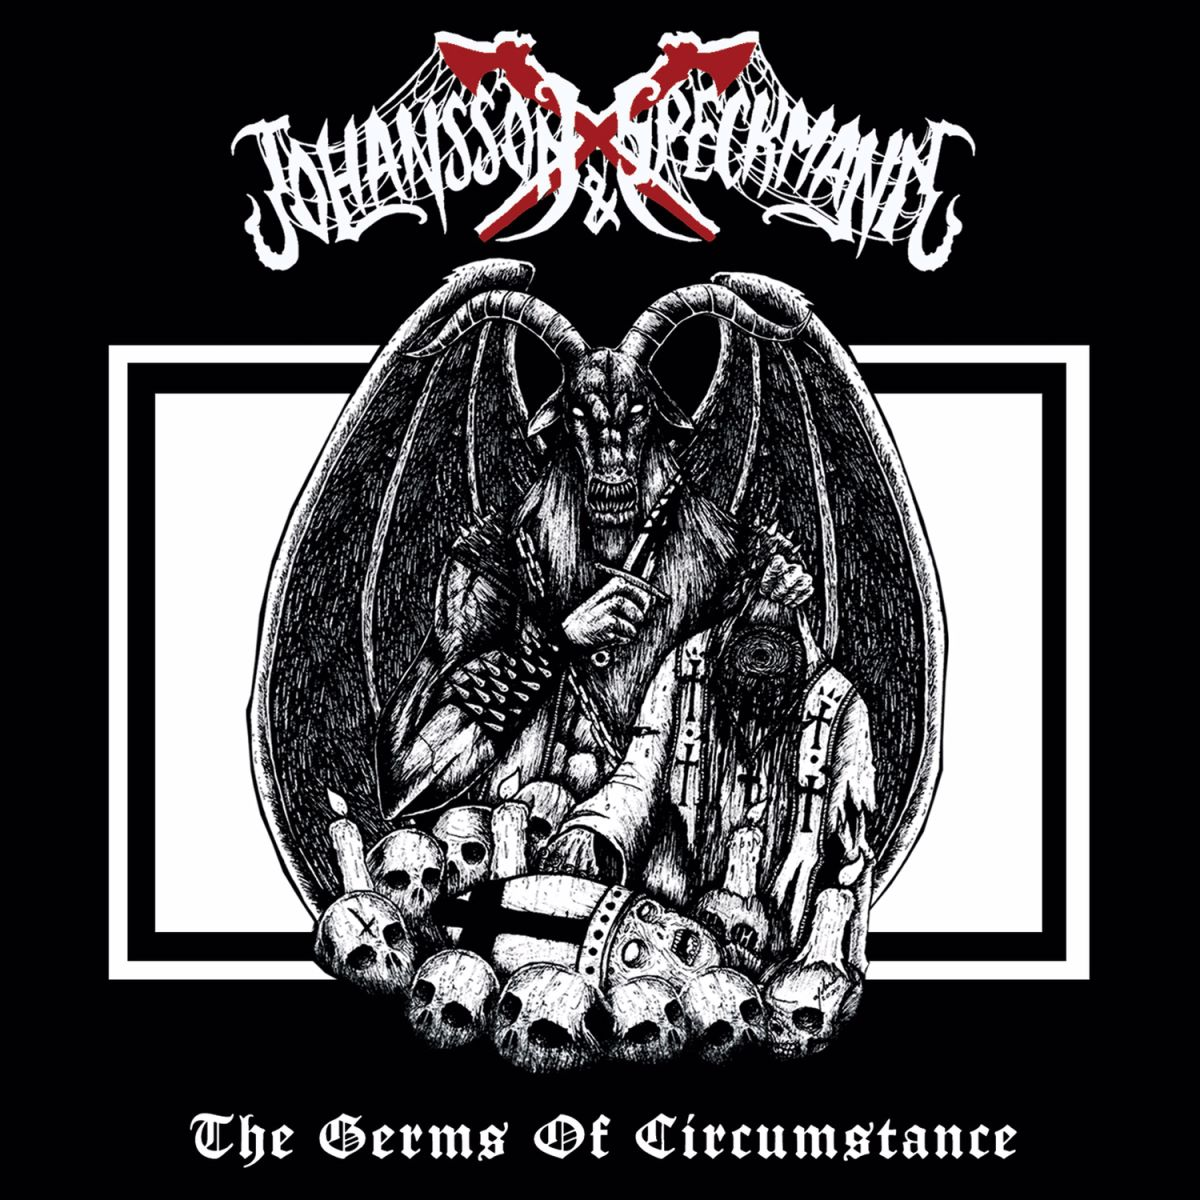 Johansson and Speckmann - The Germs Of Circumstance - album cover